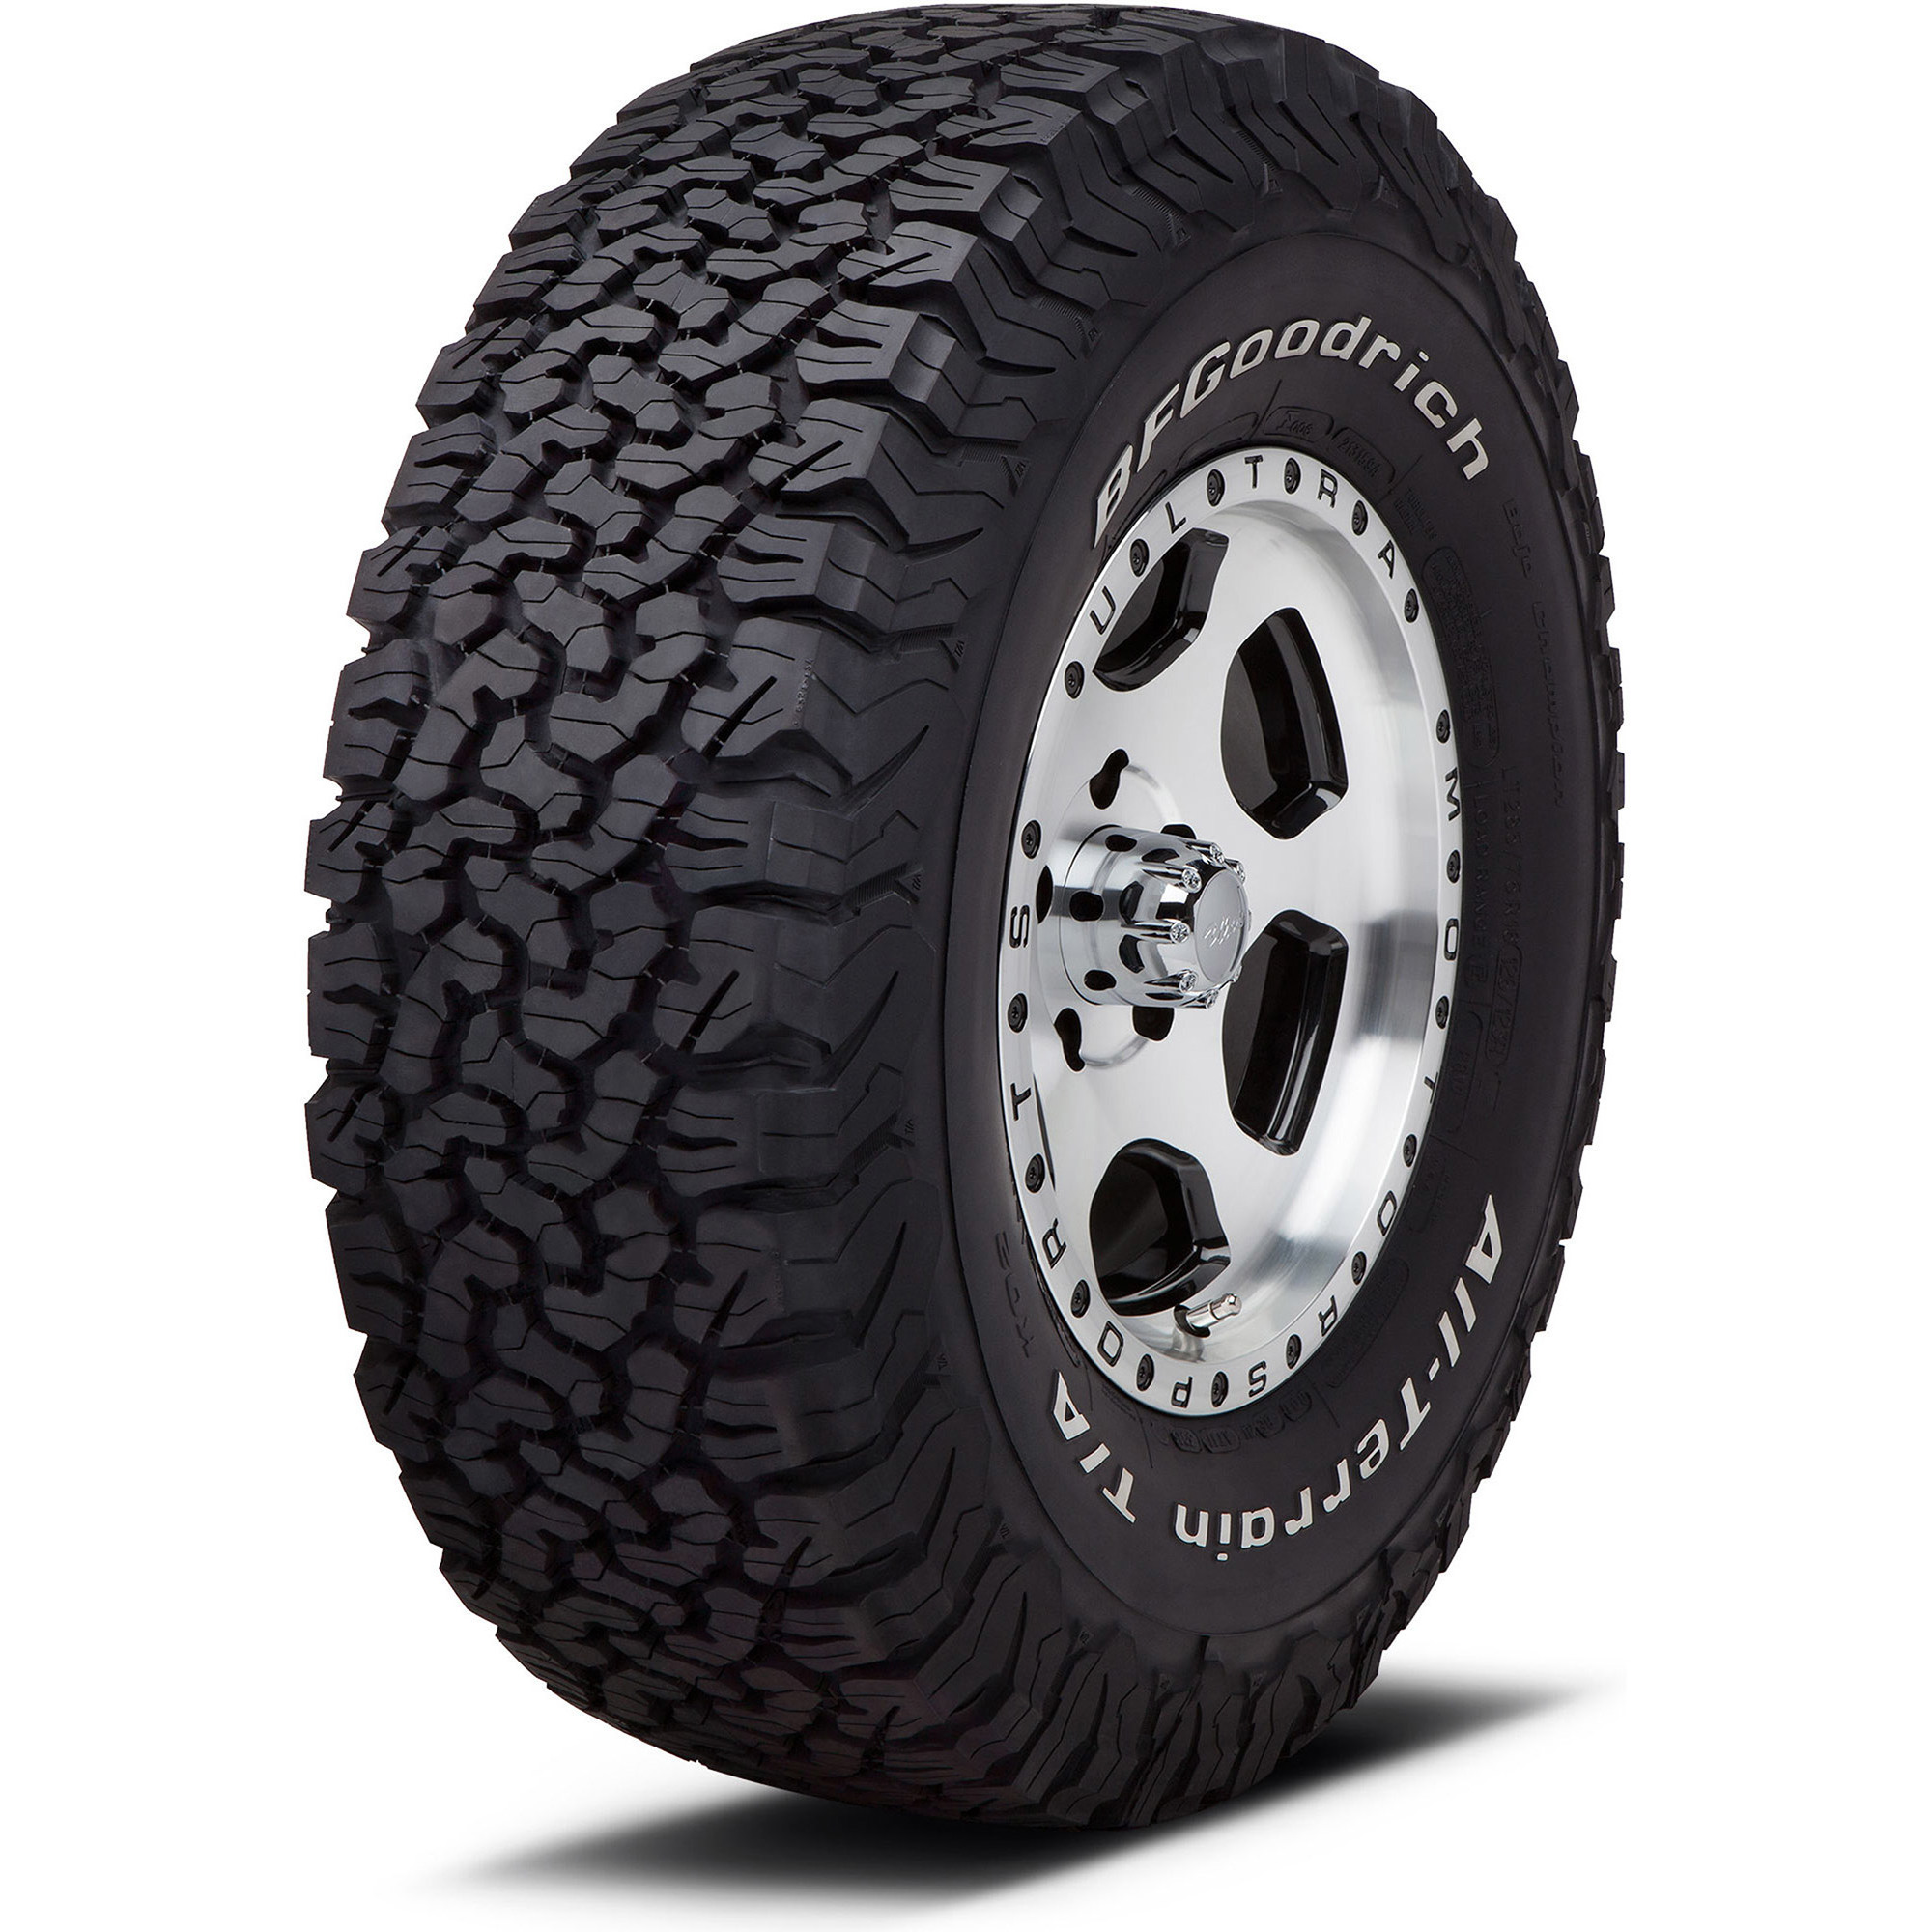 летние шины BF Goodrich All Terrain TA KO2 235/85 R16 120/116/S